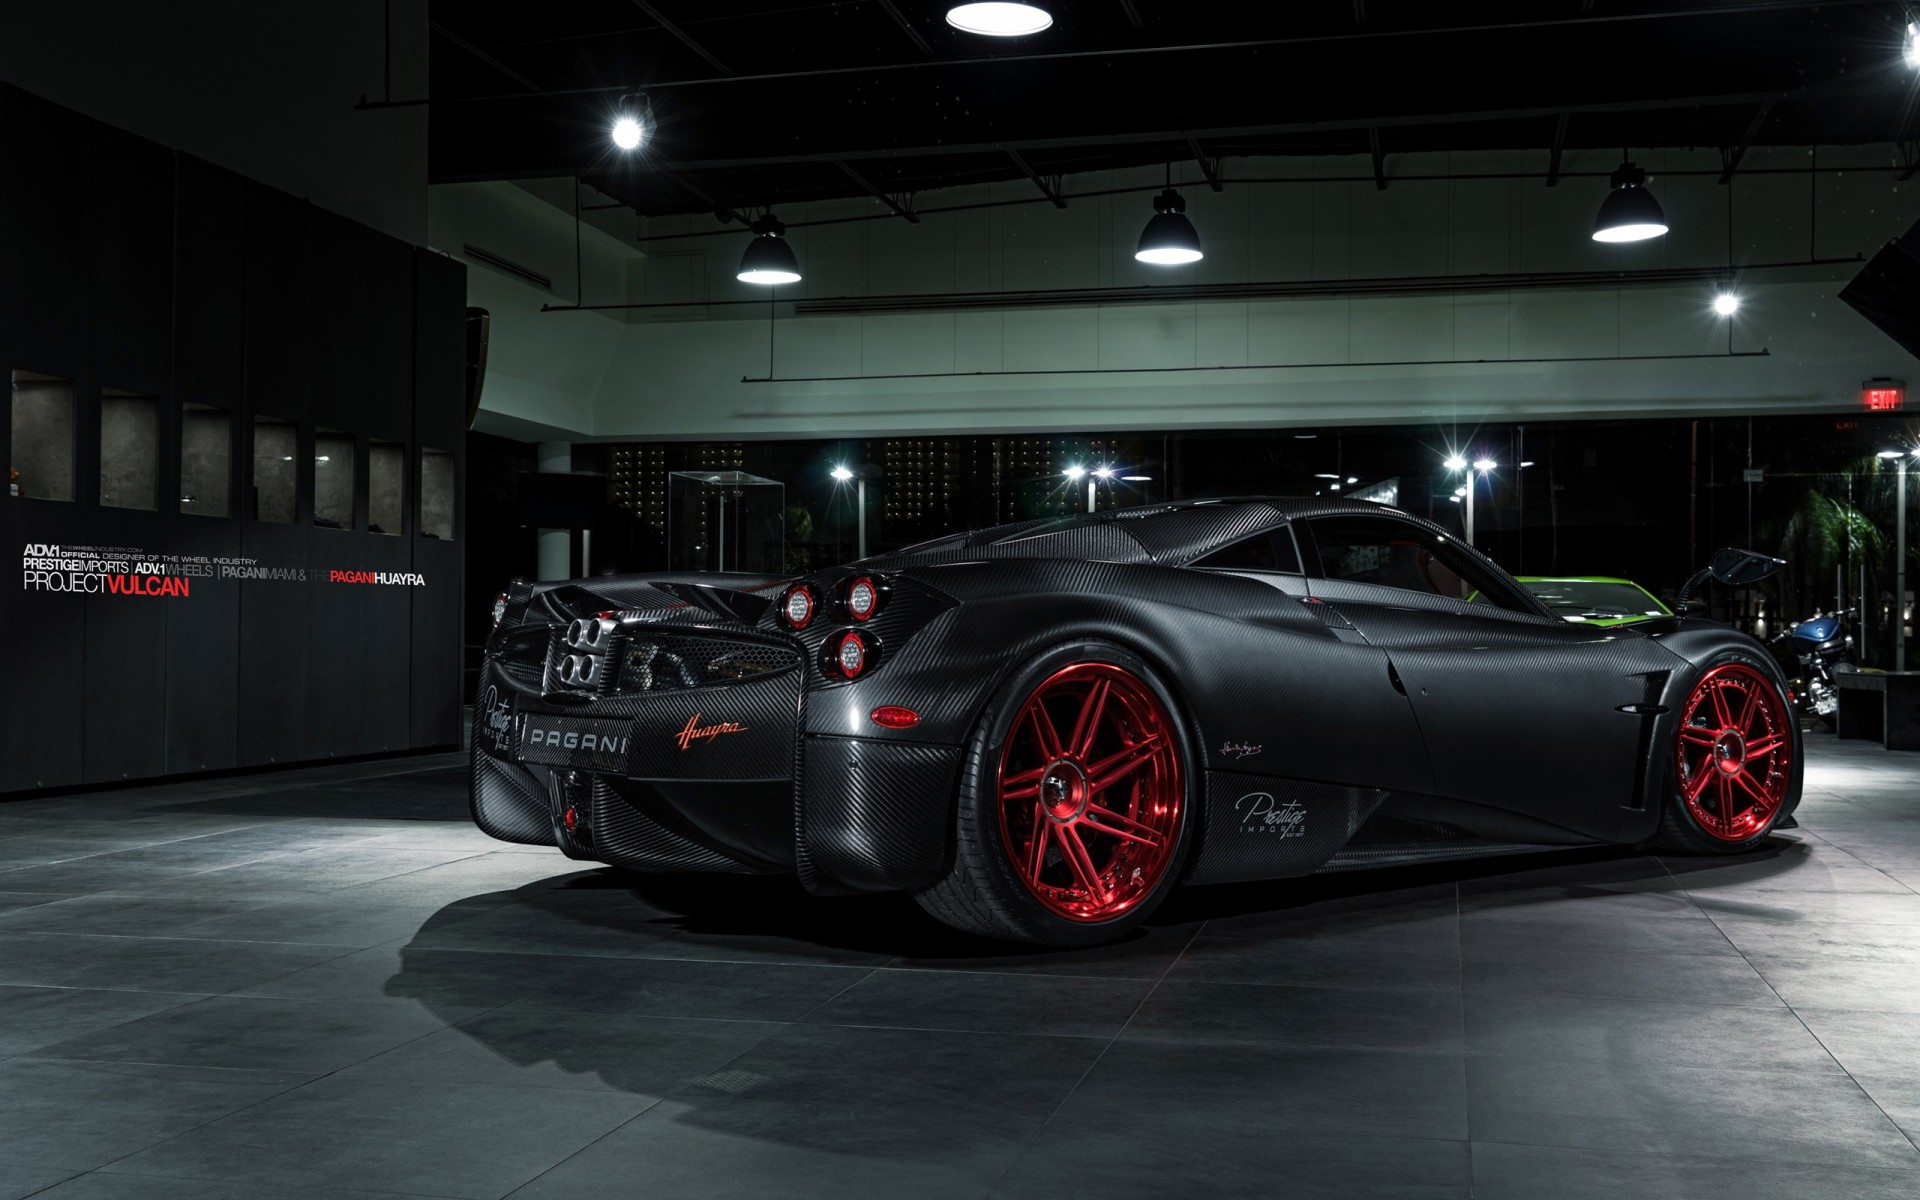 2016 ADV1 Wheels Pagani Huayra Rear Wallpaper | HD Car ...